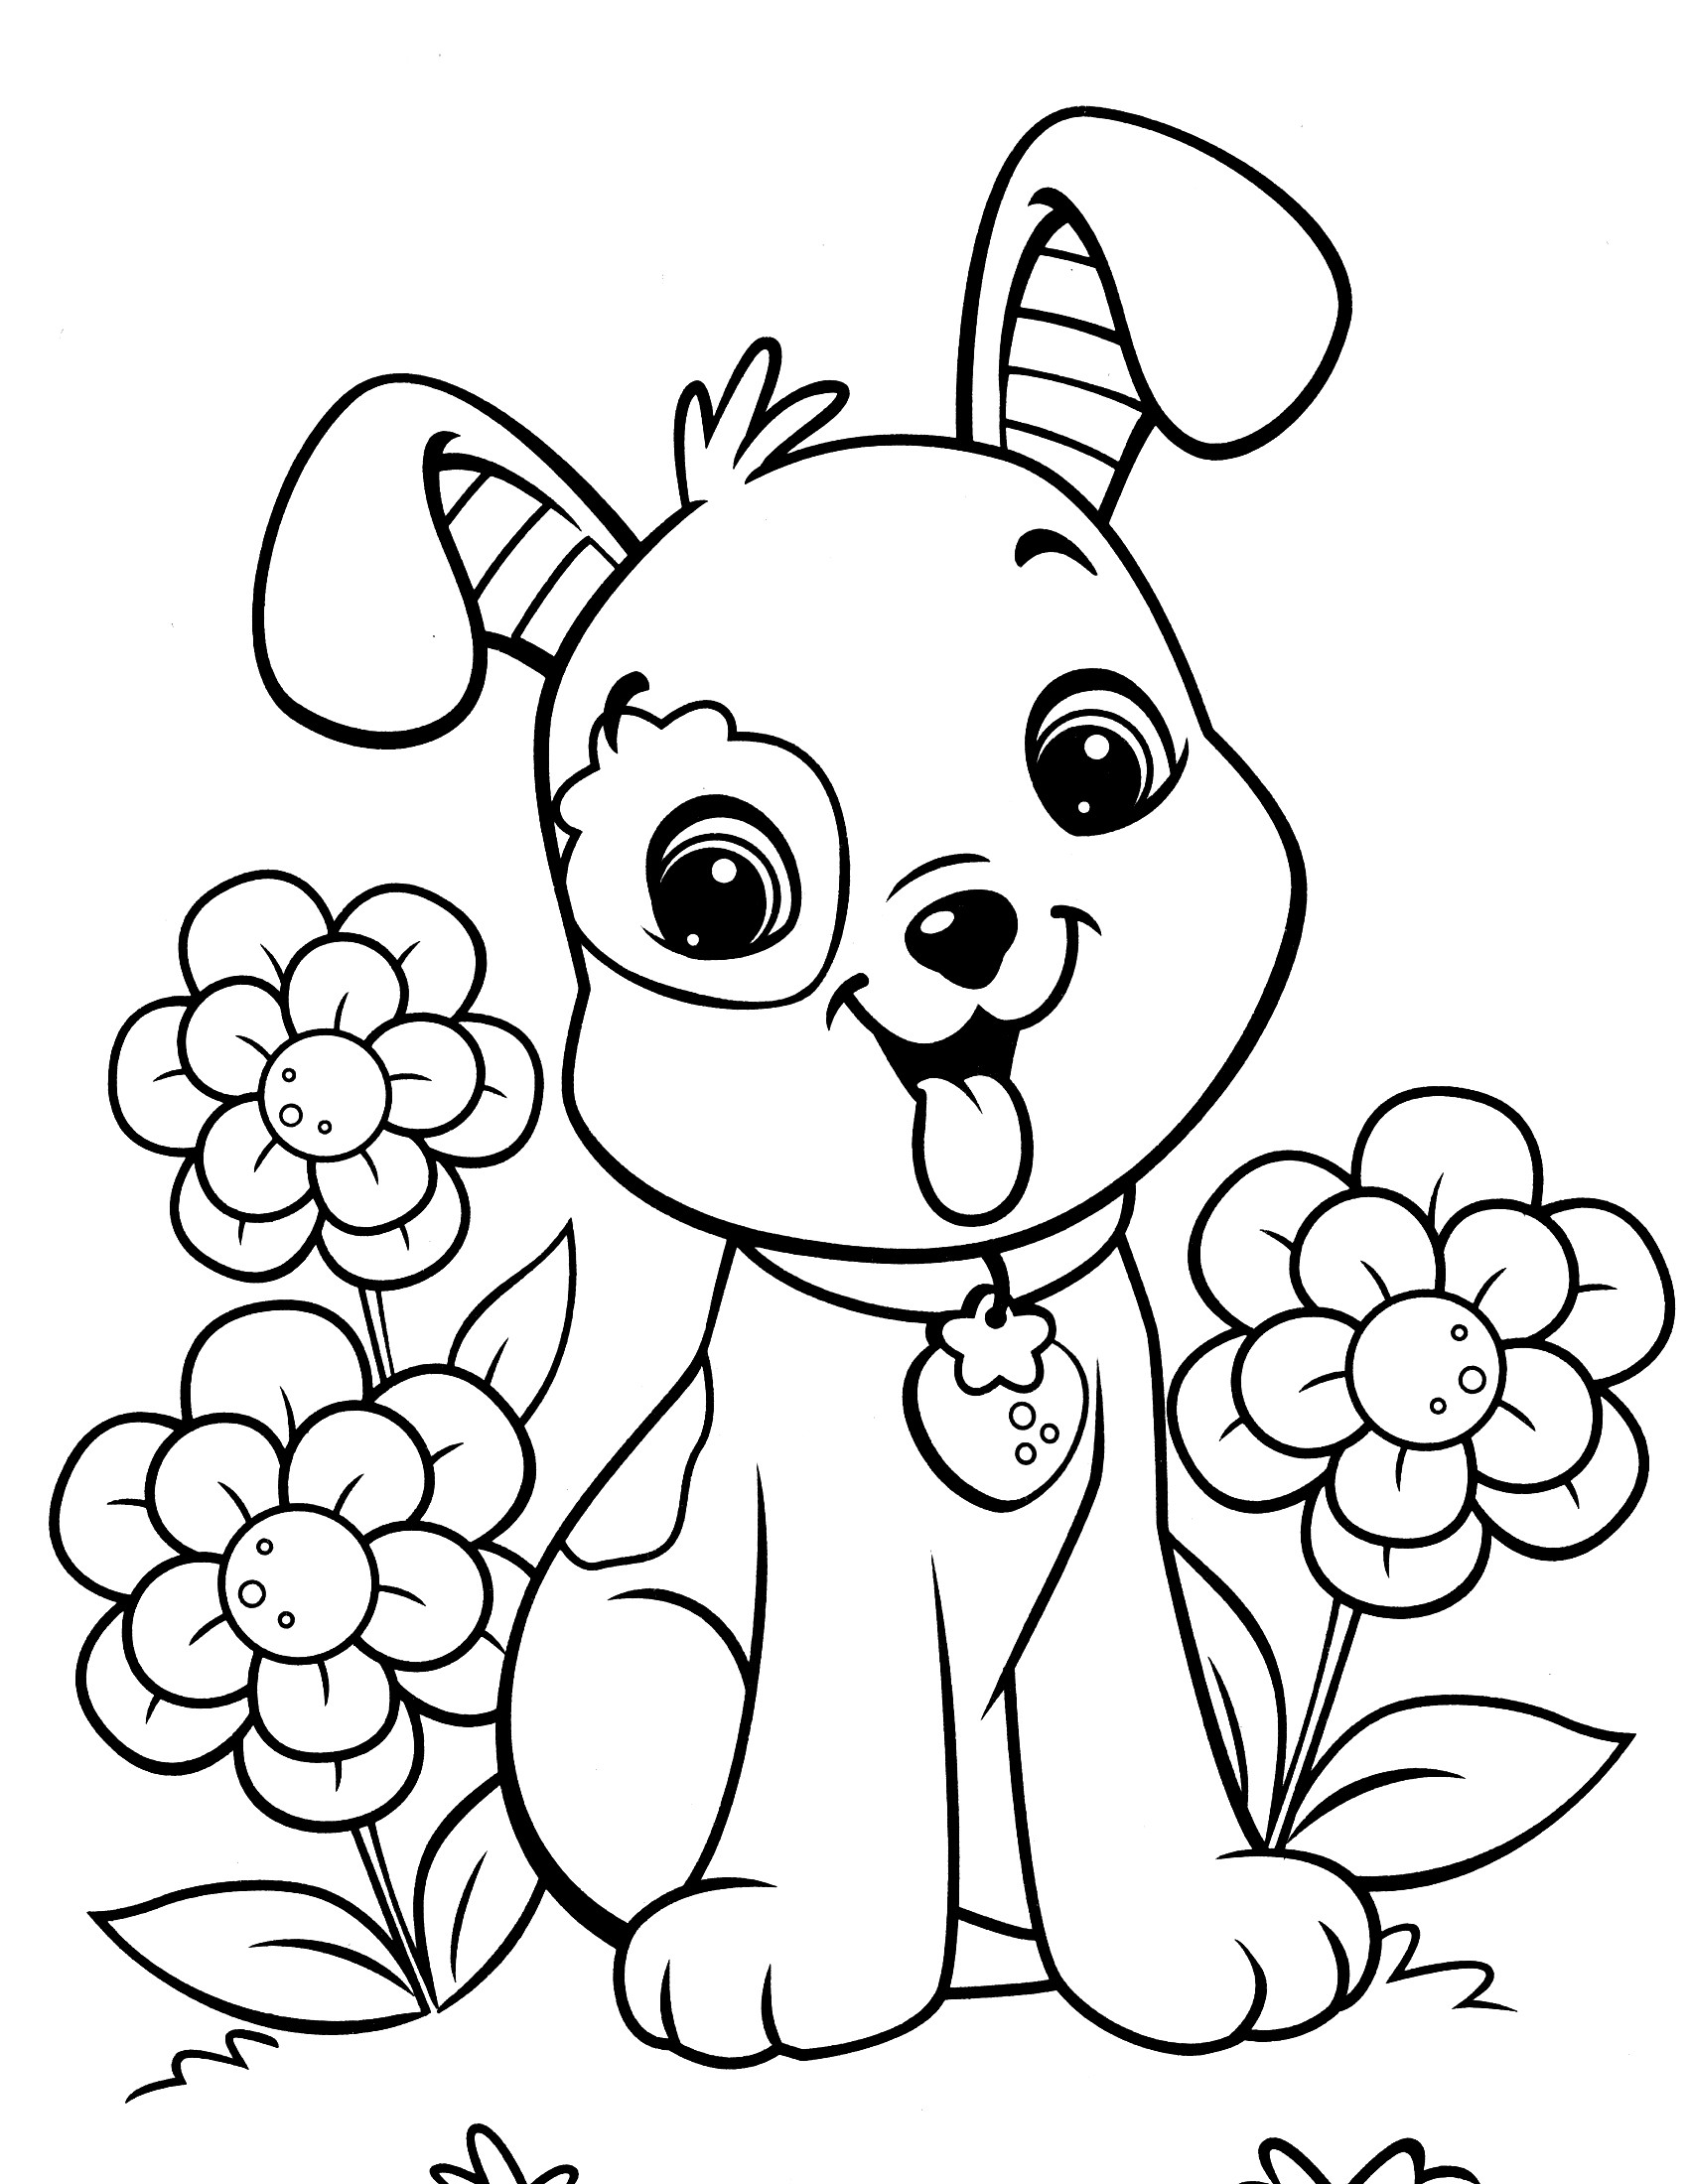 Puppy Coloring Pages For Kids  Puppy Coloring Pages Best Coloring Pages For Kids